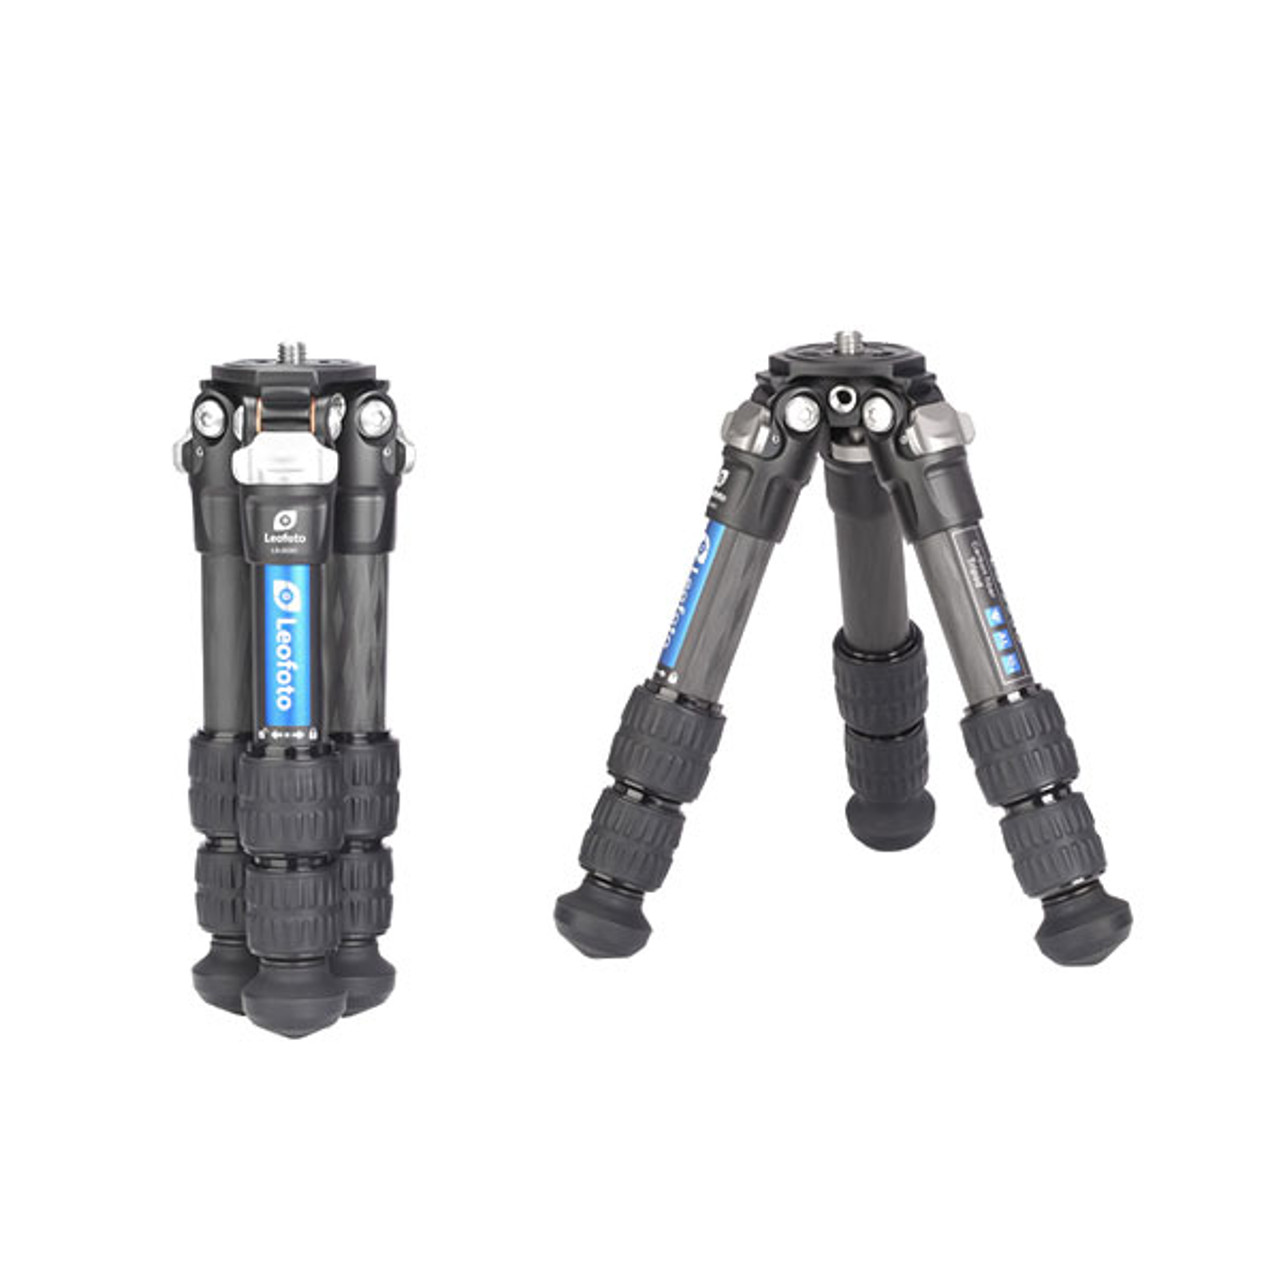 Leofoto LS-223C 22mm 3-Section Compact Carbon Fiber Tripod